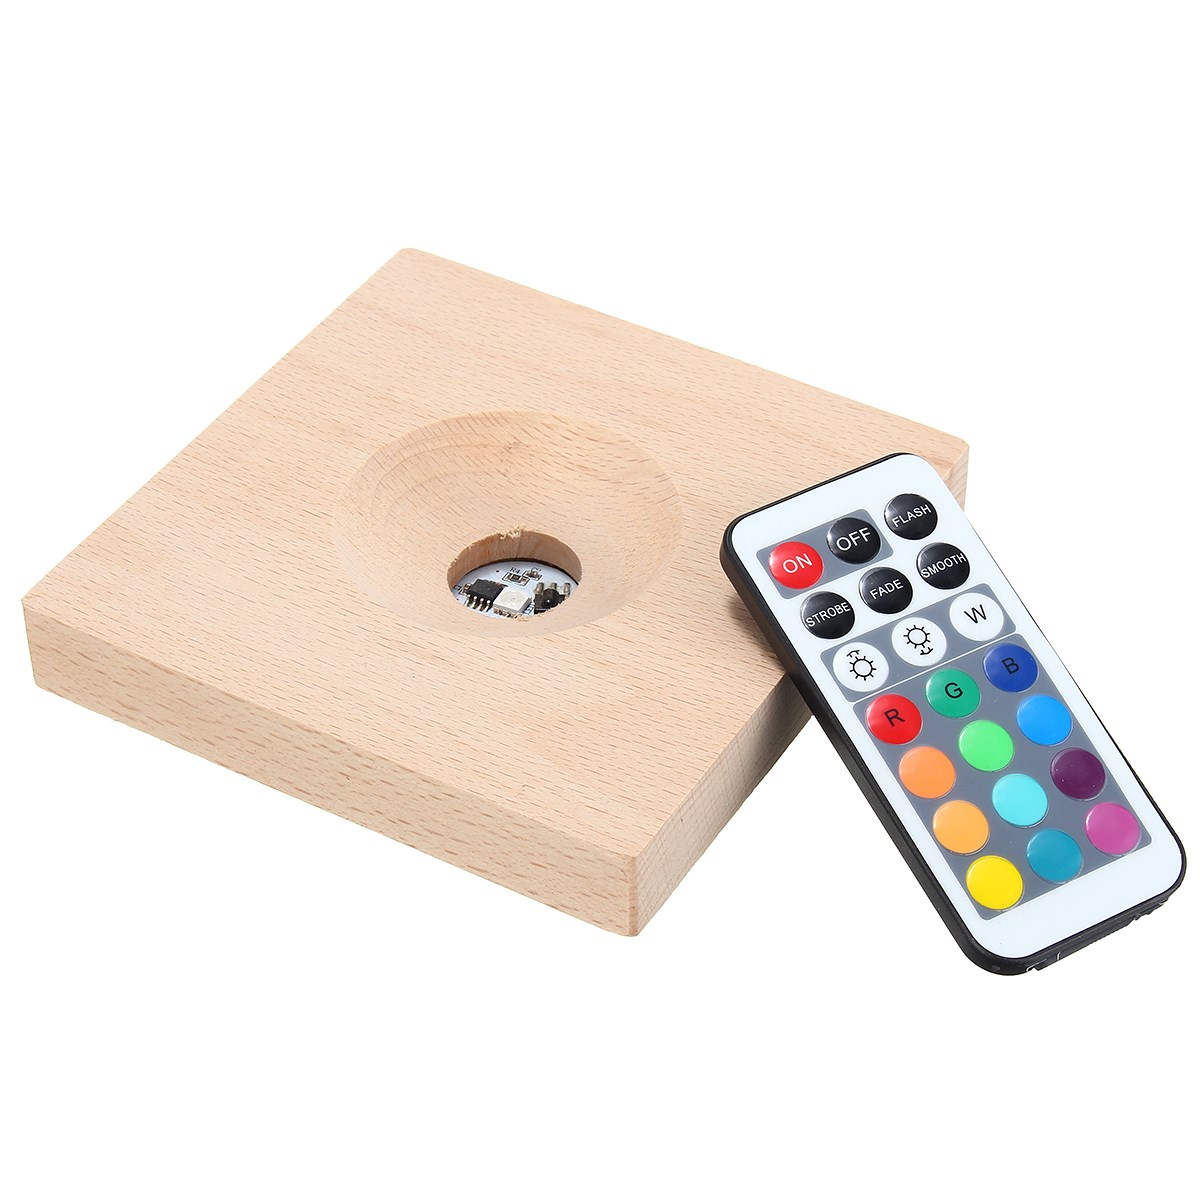 LED Night Light Lamp RGB Multicolor Light Emitting Socket Lamp Base Holder Solid Wood Lamp Holder With Remote Control DC3V 2017 hot led display space isolator recharge base remote control uv lamp vacuum cleaners